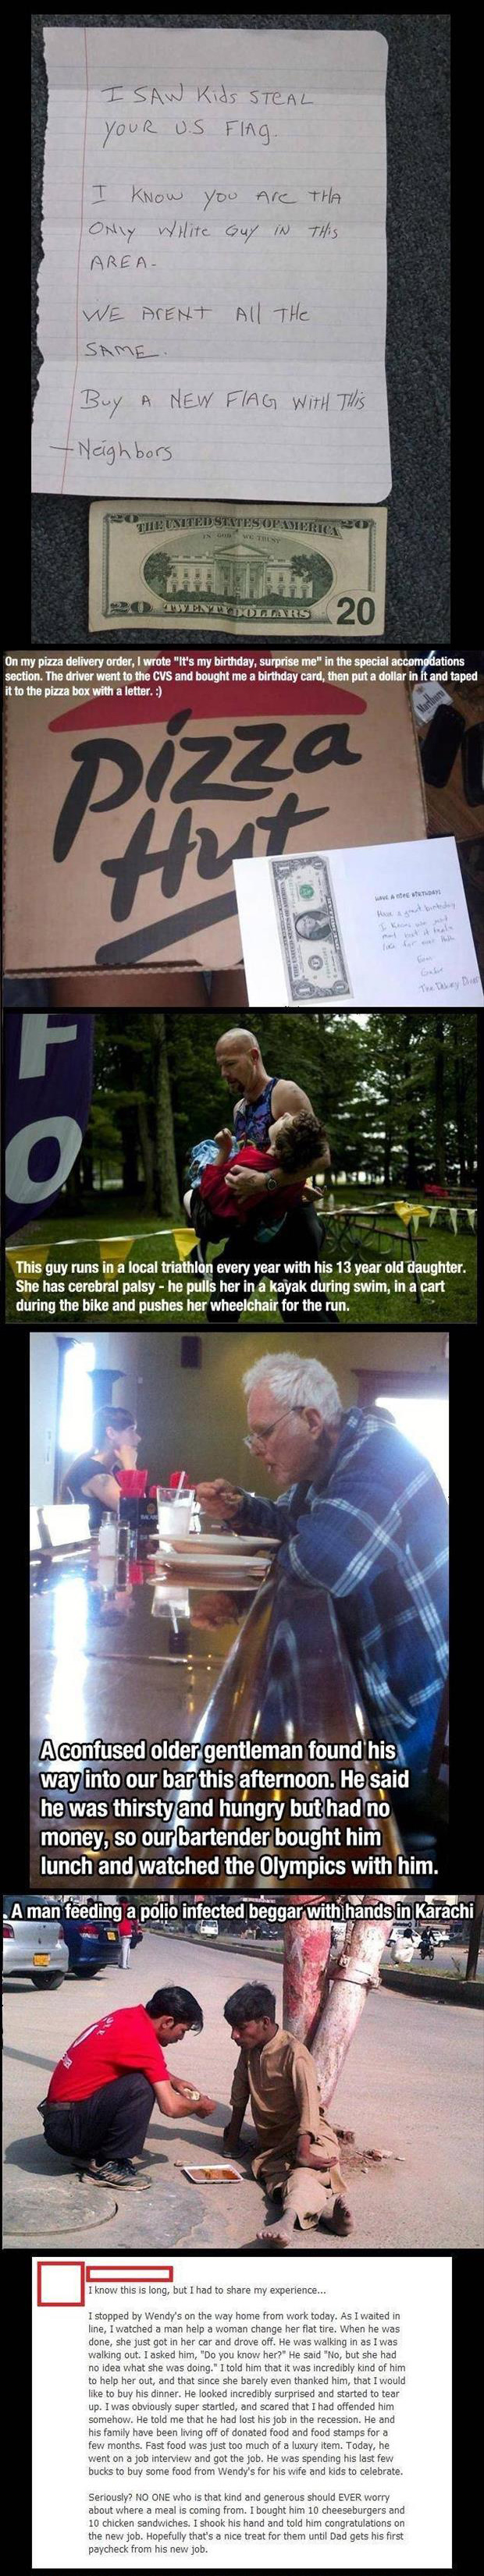 faith in humanity restored (7)11